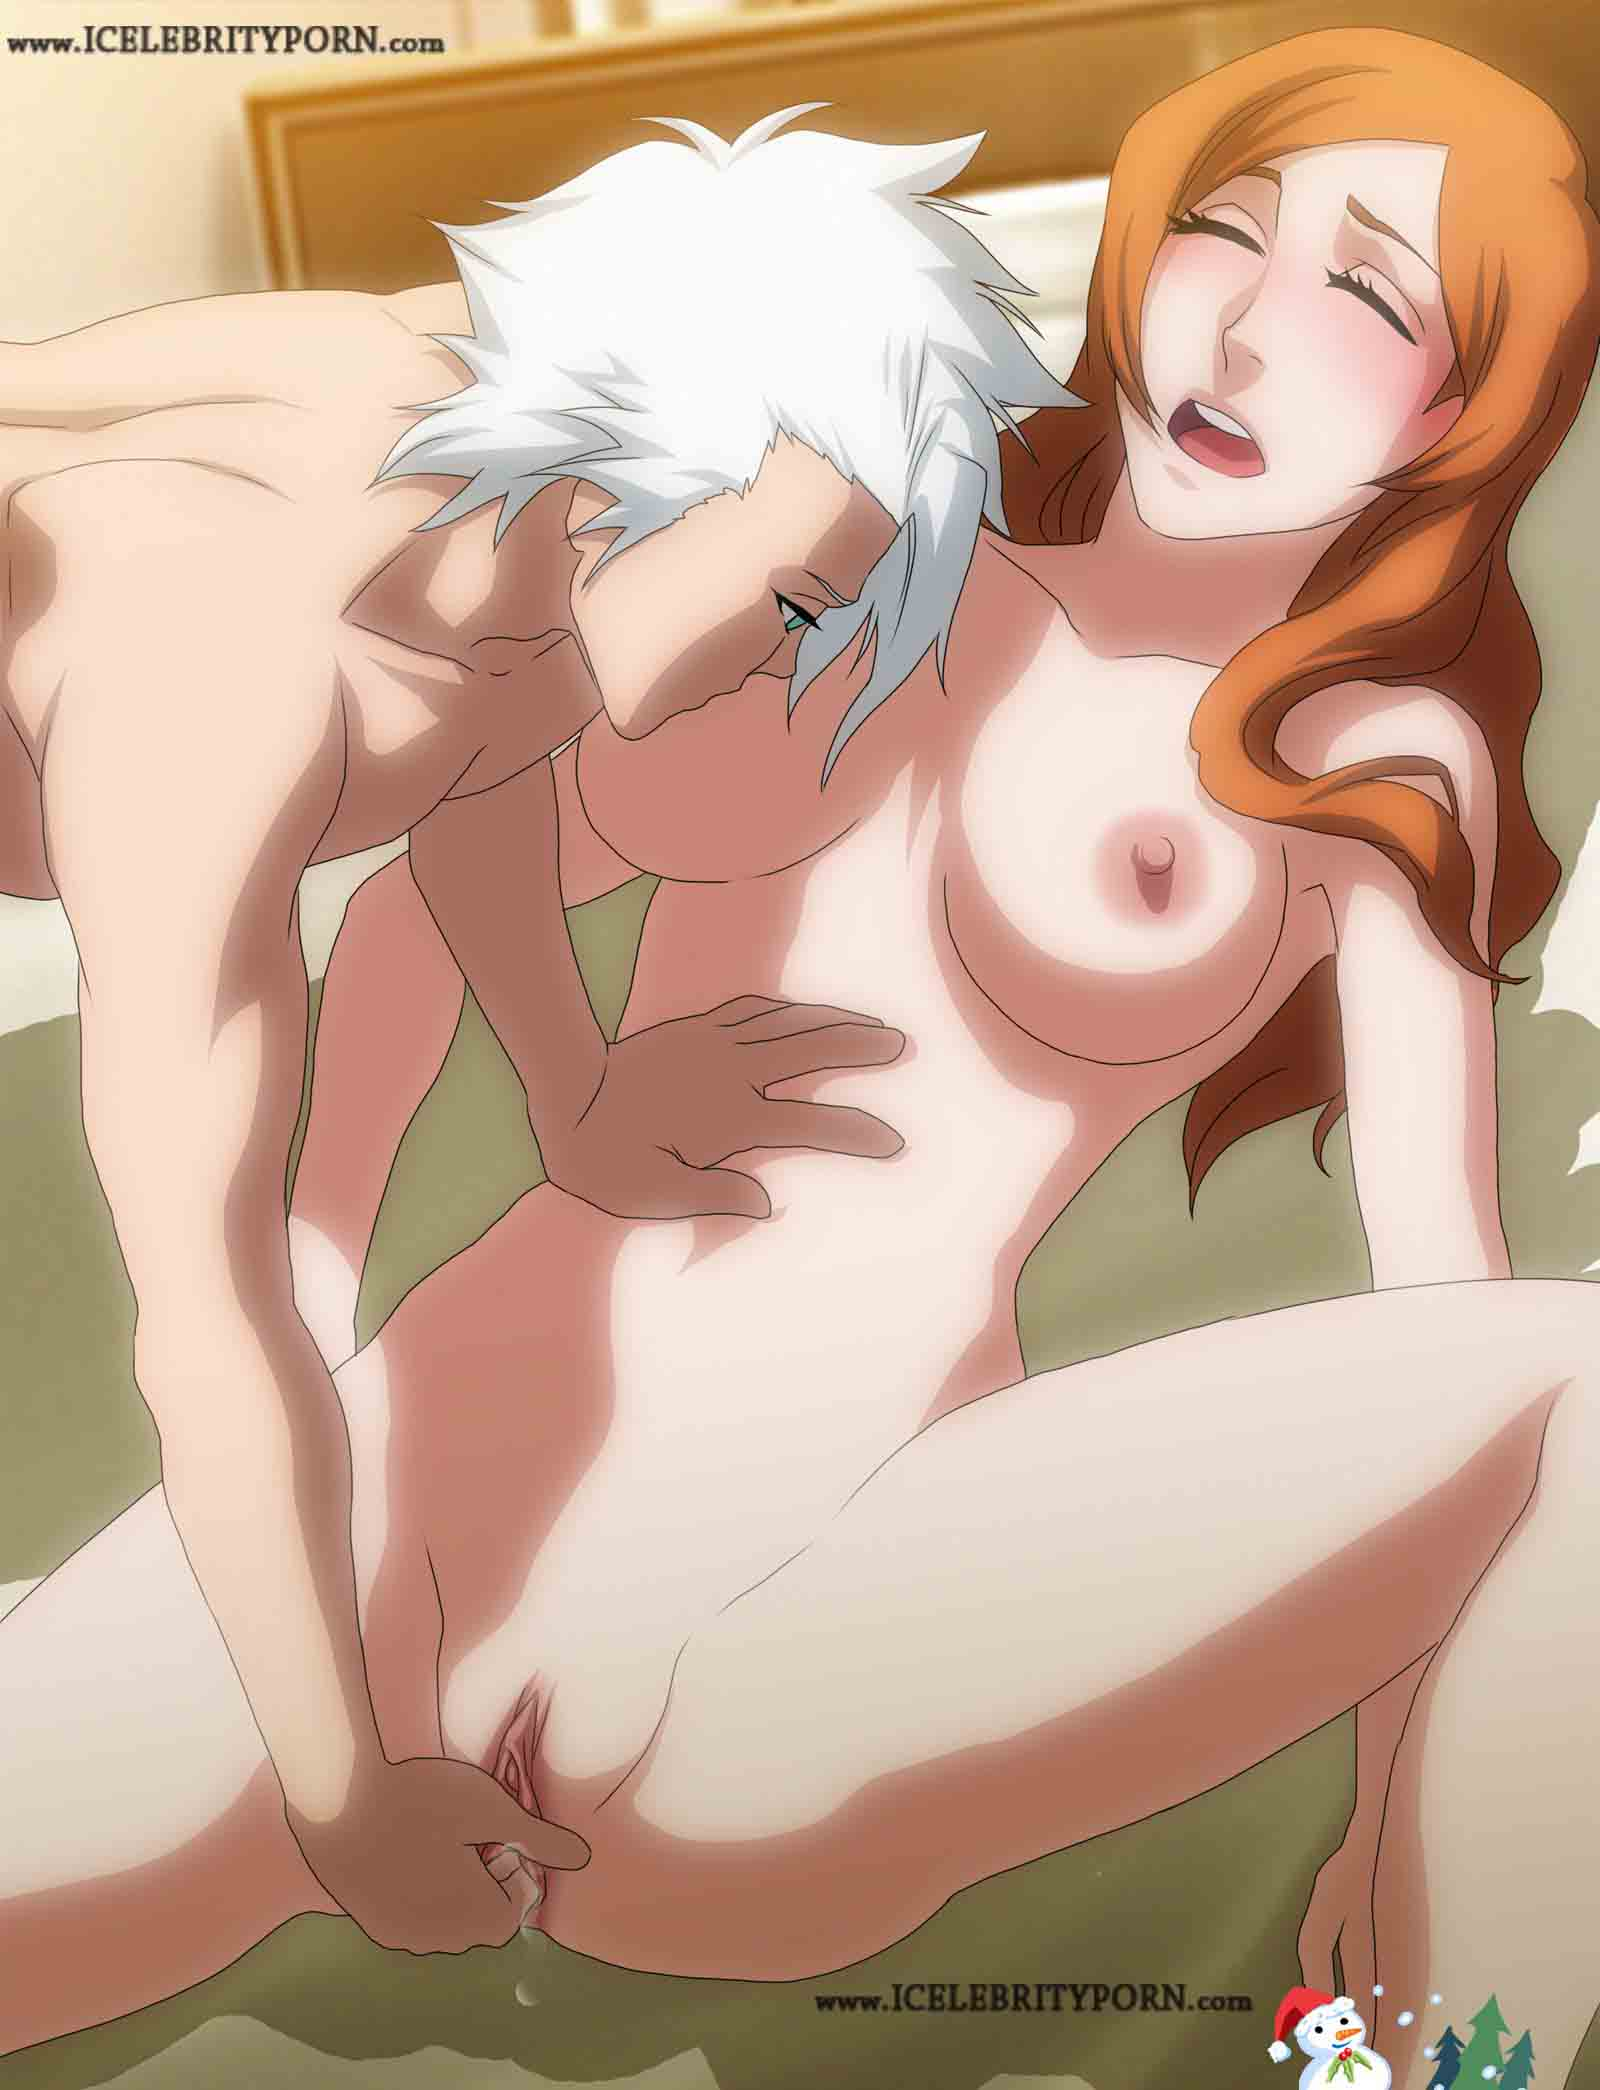 Are free anime porn videos bleach was error